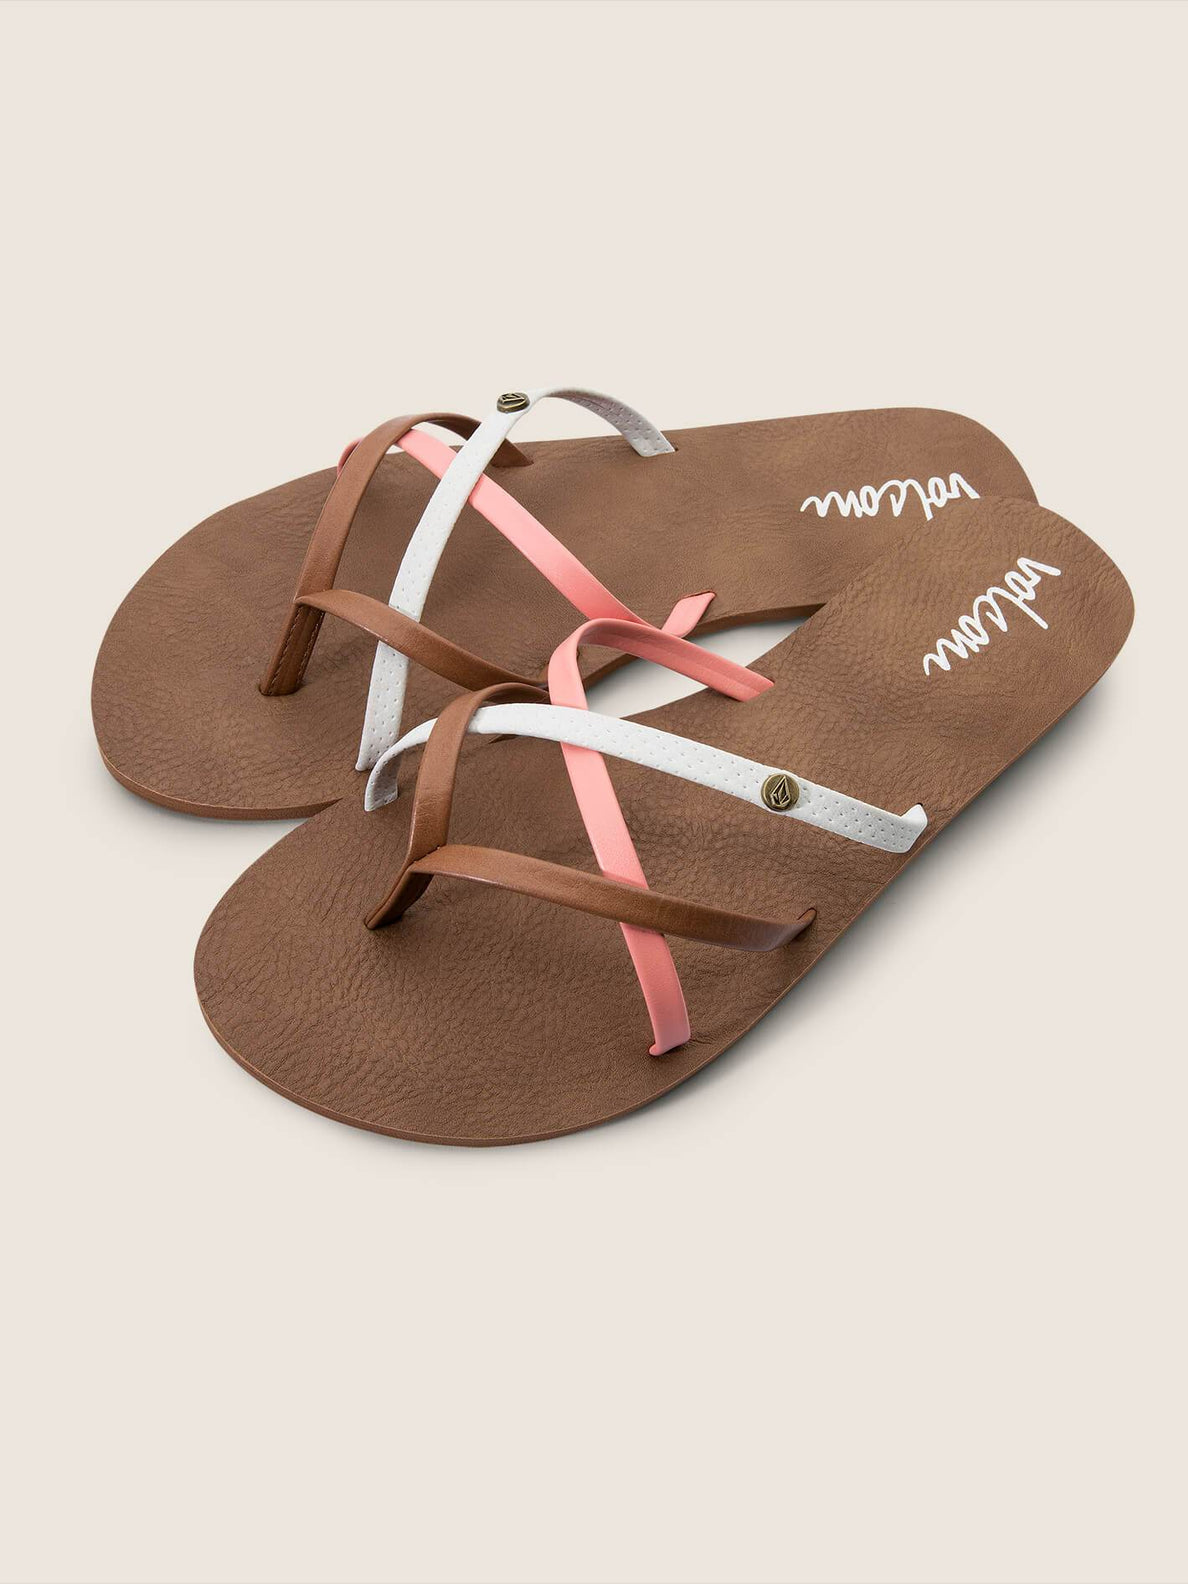 New School Sandals In Coral, Front View